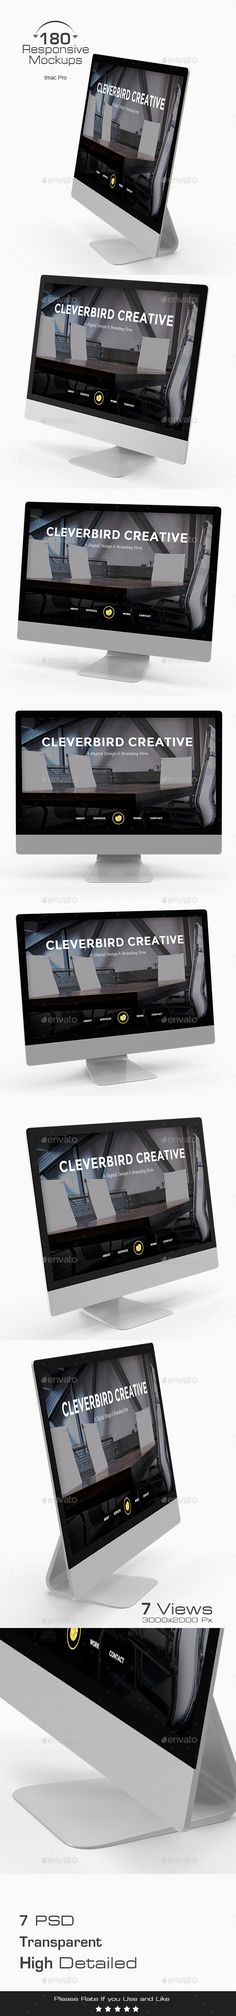 180 Responsive 3D Mockup Design Imac Pro Monitors Display Template PSD. Download here: http://graphicriver.net/item/180-responsive-3d-mockup-imac-pro/16874209?ref=yinkira